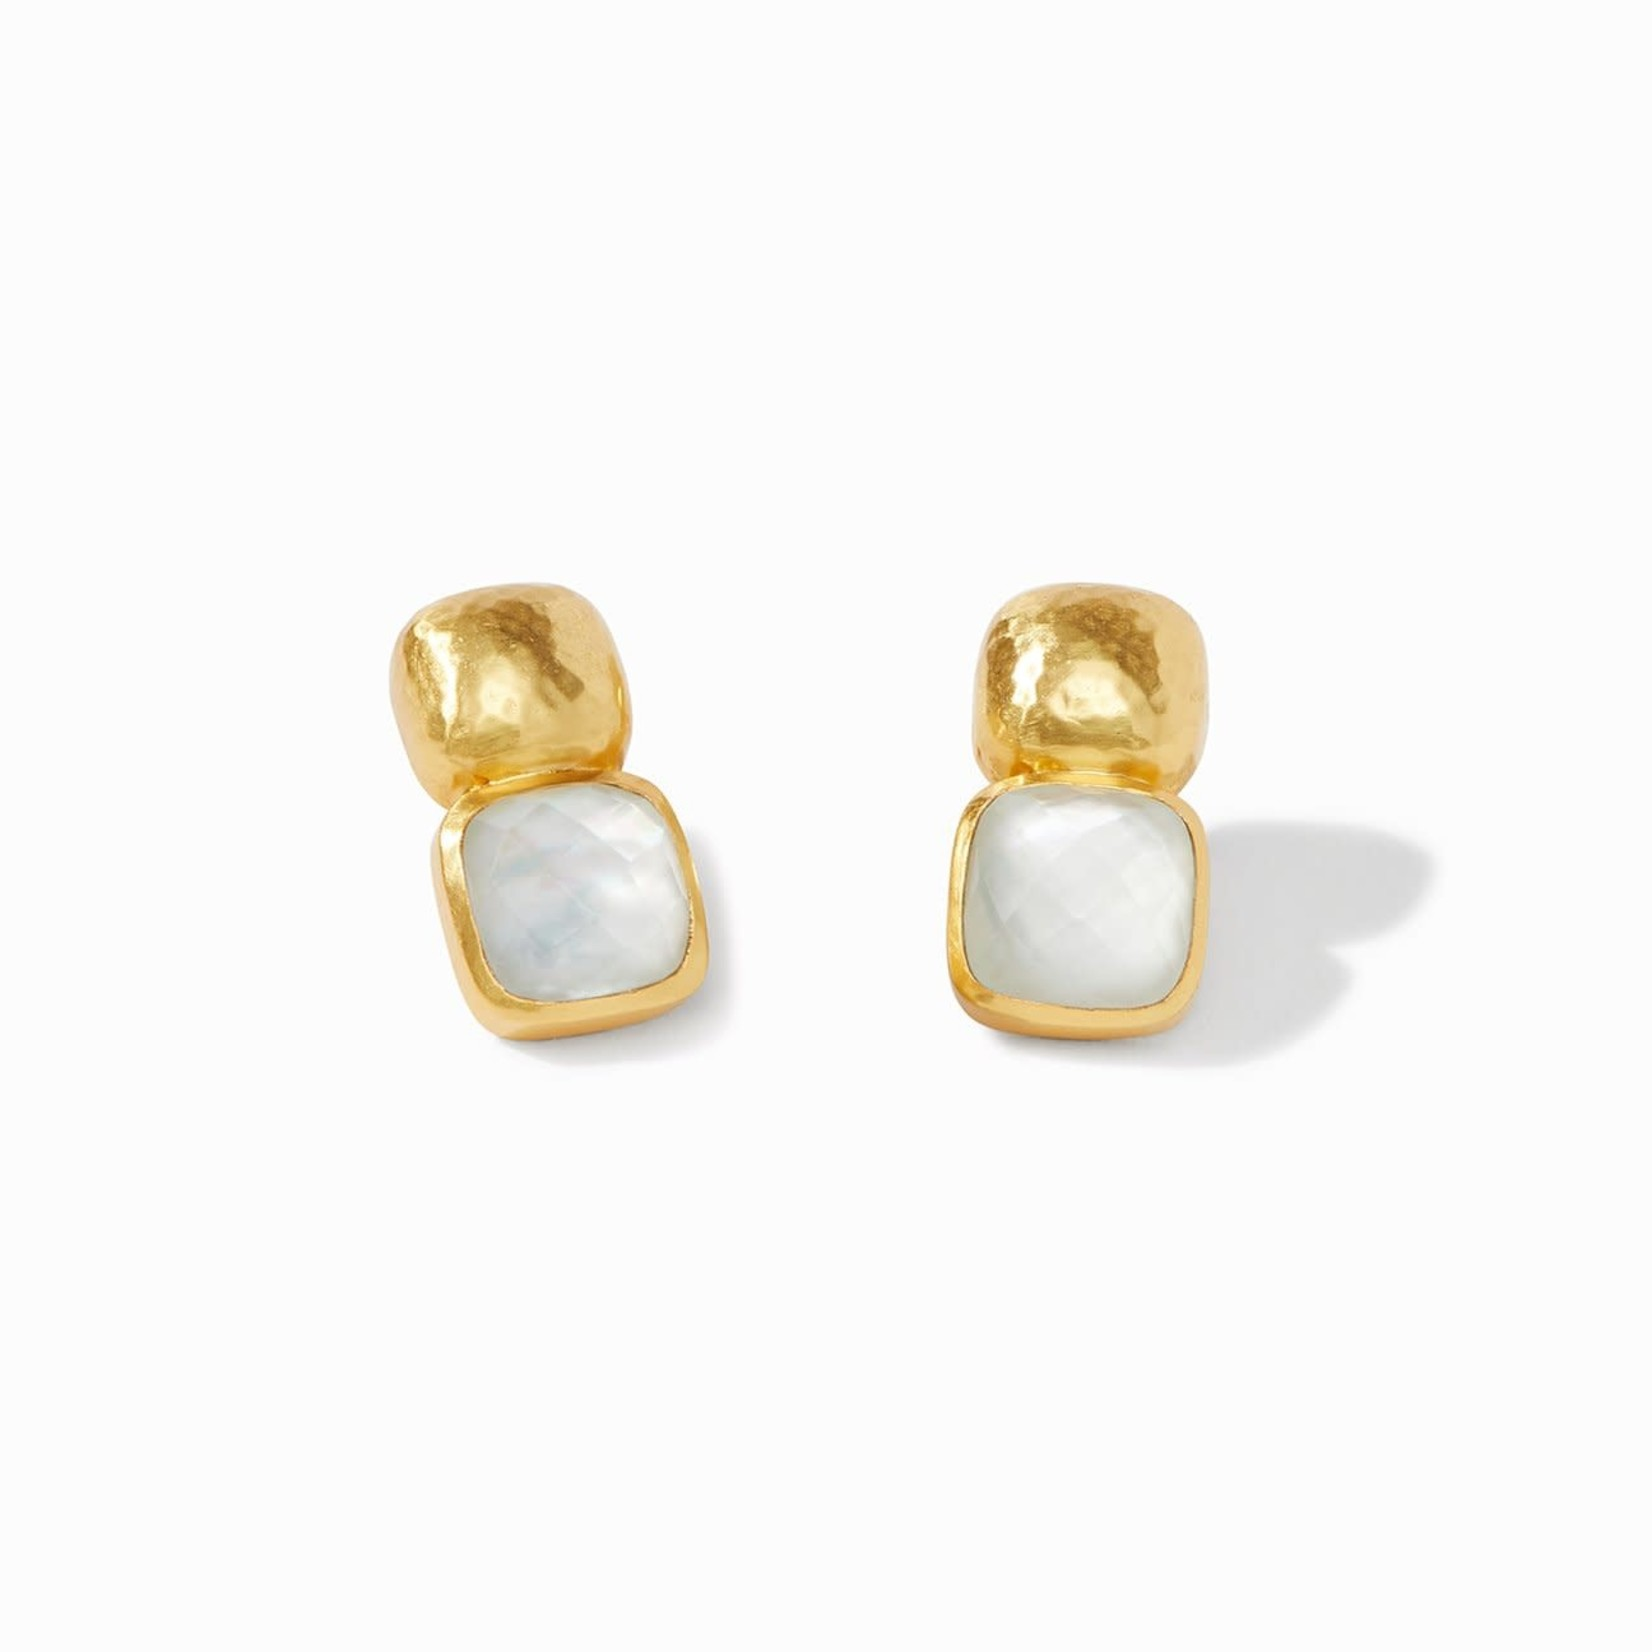 Julie Vos Catalina Earring - Iridescent Clear Crystal